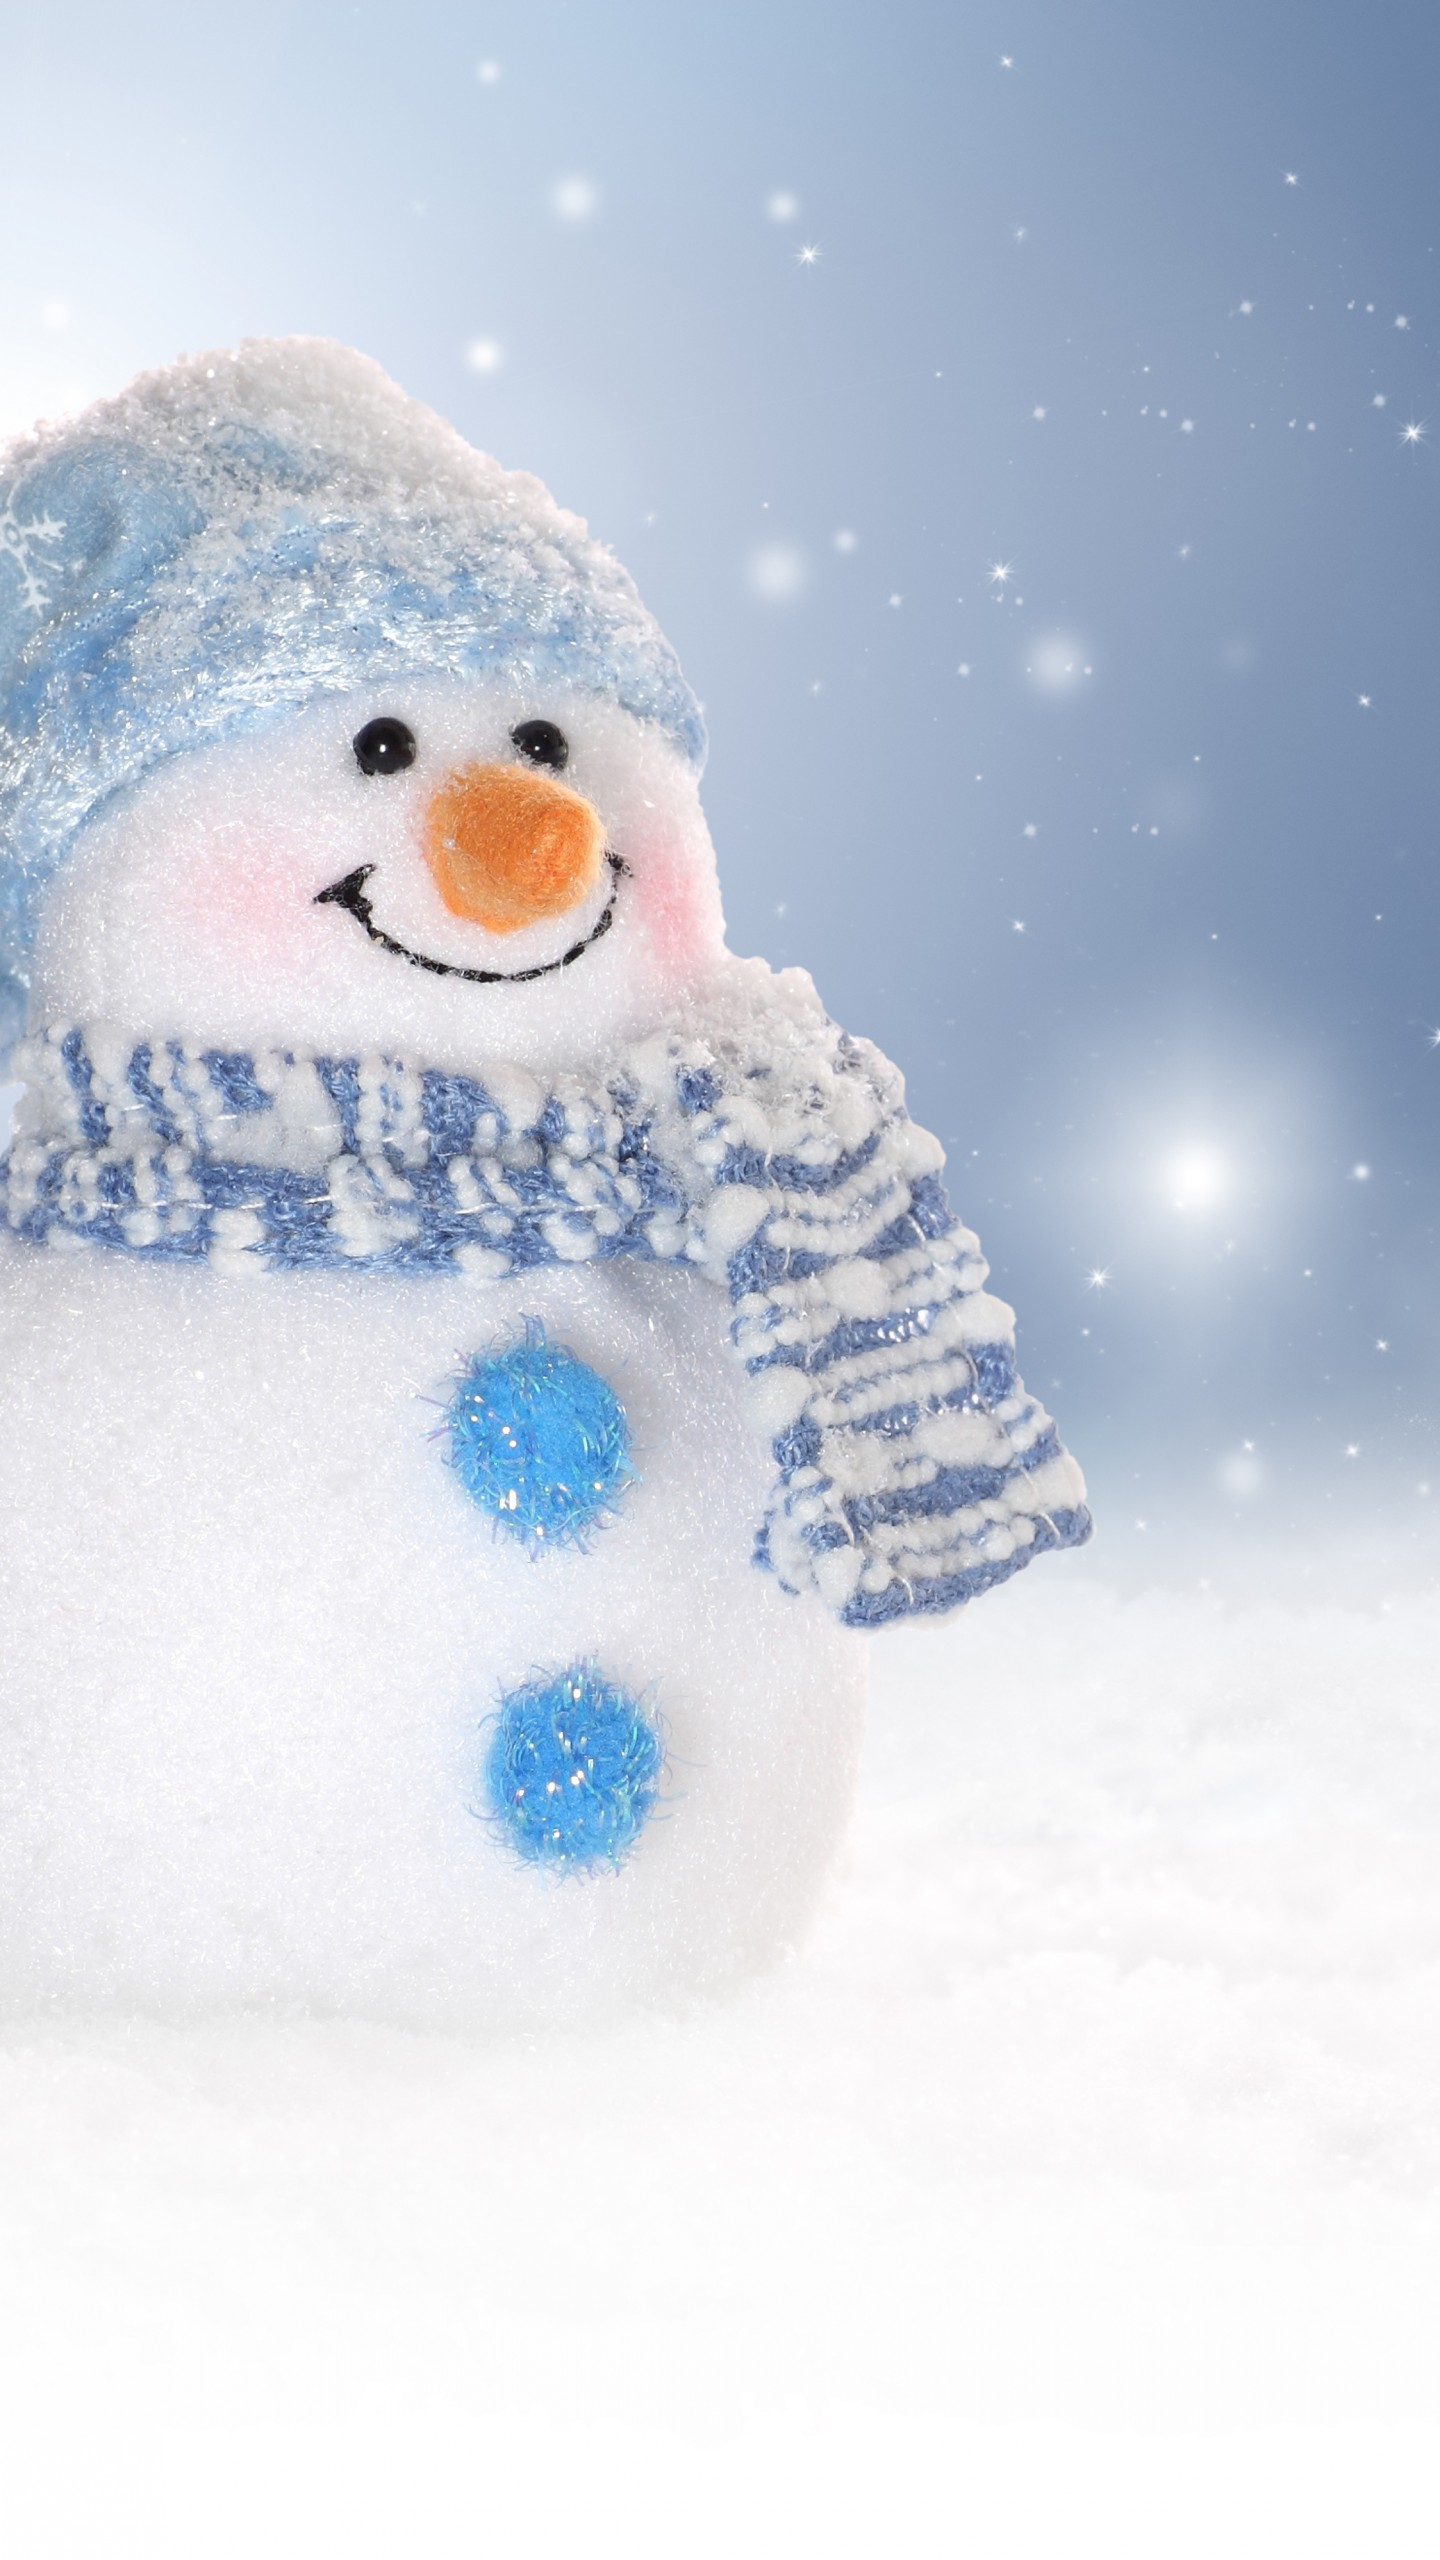 Cute Snowman iPhone Wallpaper 1440x2560